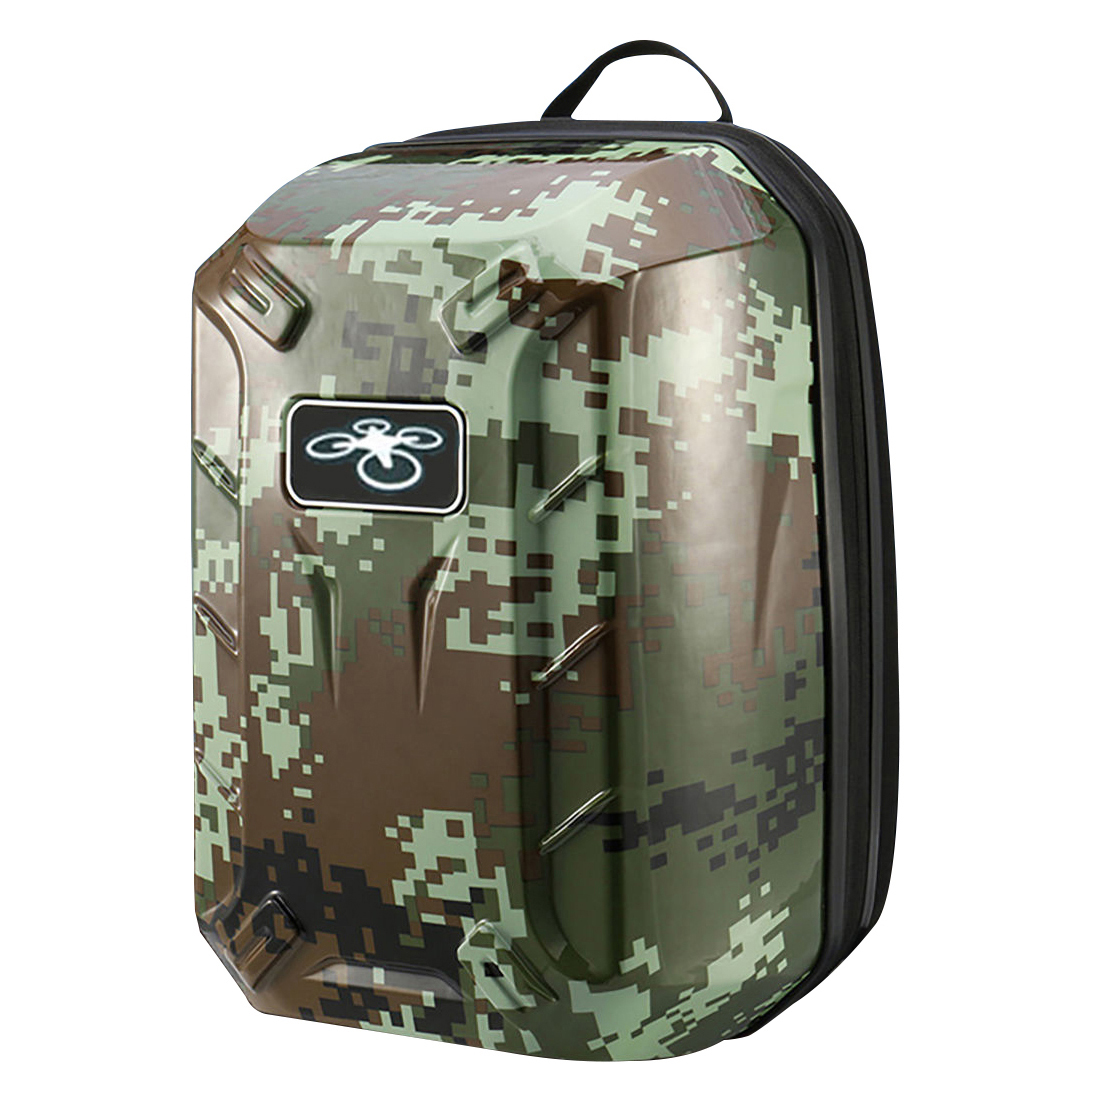 Traveling Waterproof Backpack Shoulder Bag Hard Shell Case For DJI Phantom 3Color:Army green vsen traveling waterproof backpack shoulder bag hard shell case for dji phantom 3color army green